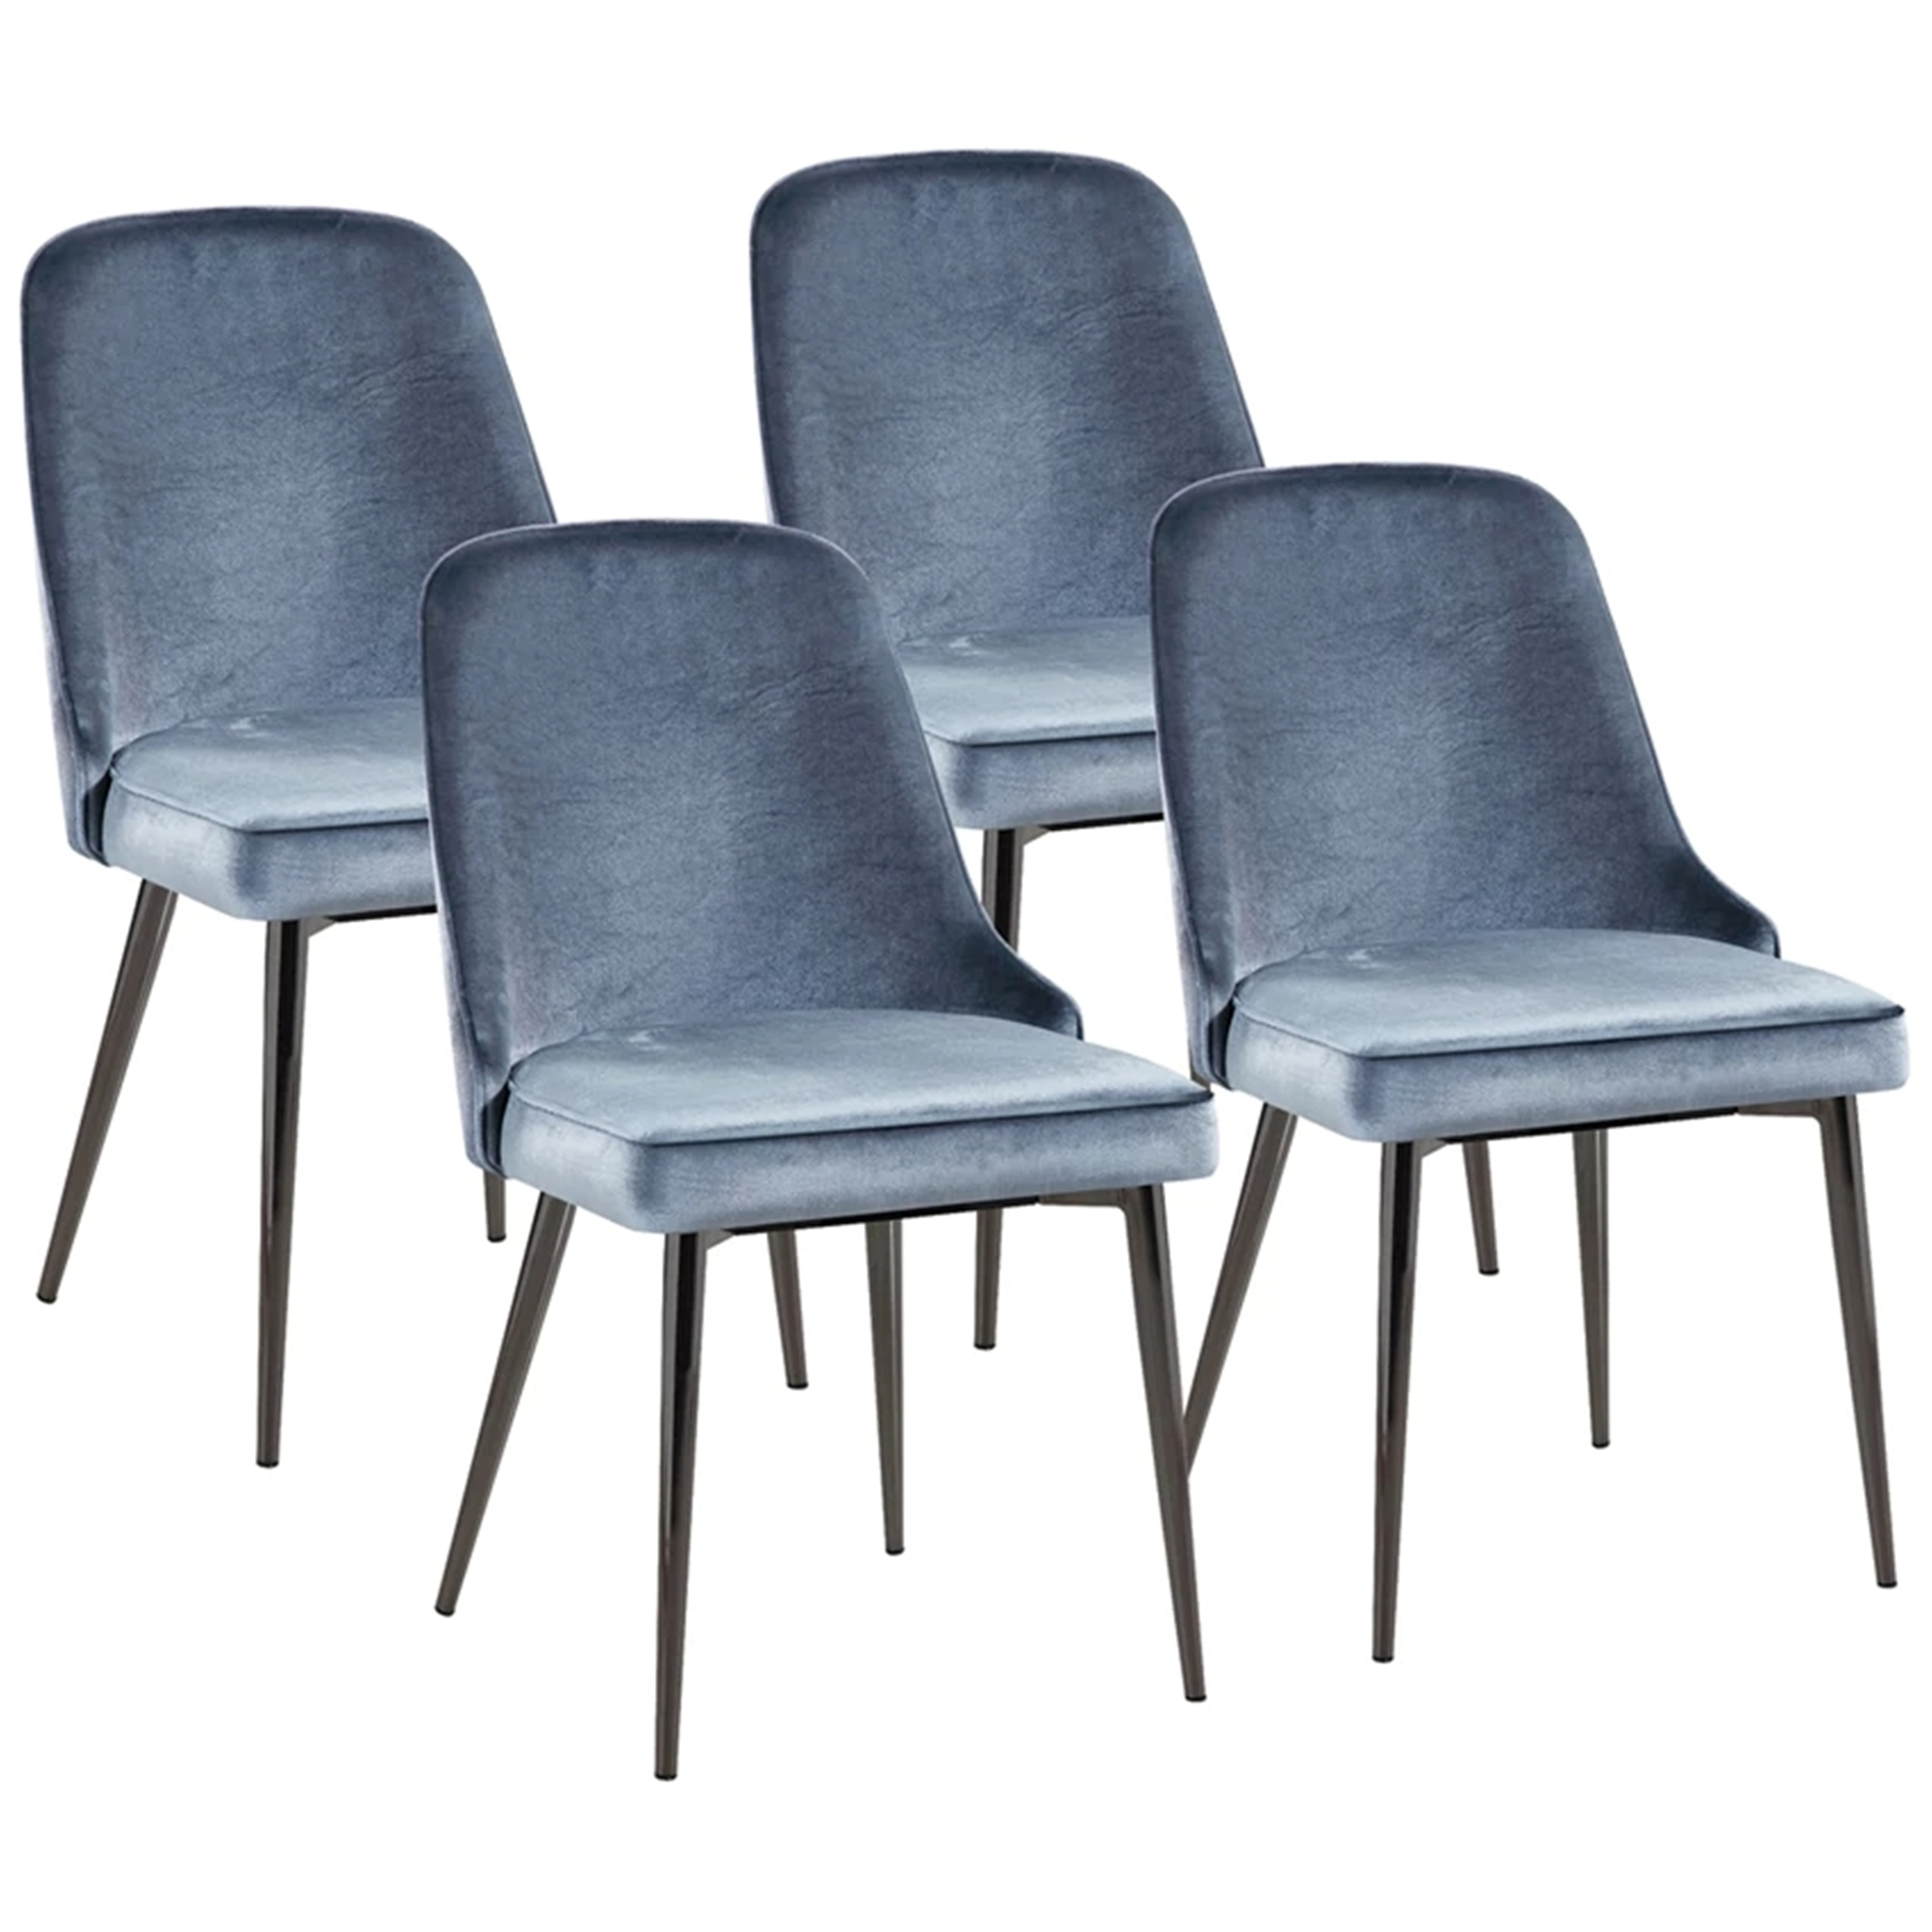 Shop Modern Chic Design Blue Velvet With Metal Legs Dining Chairs